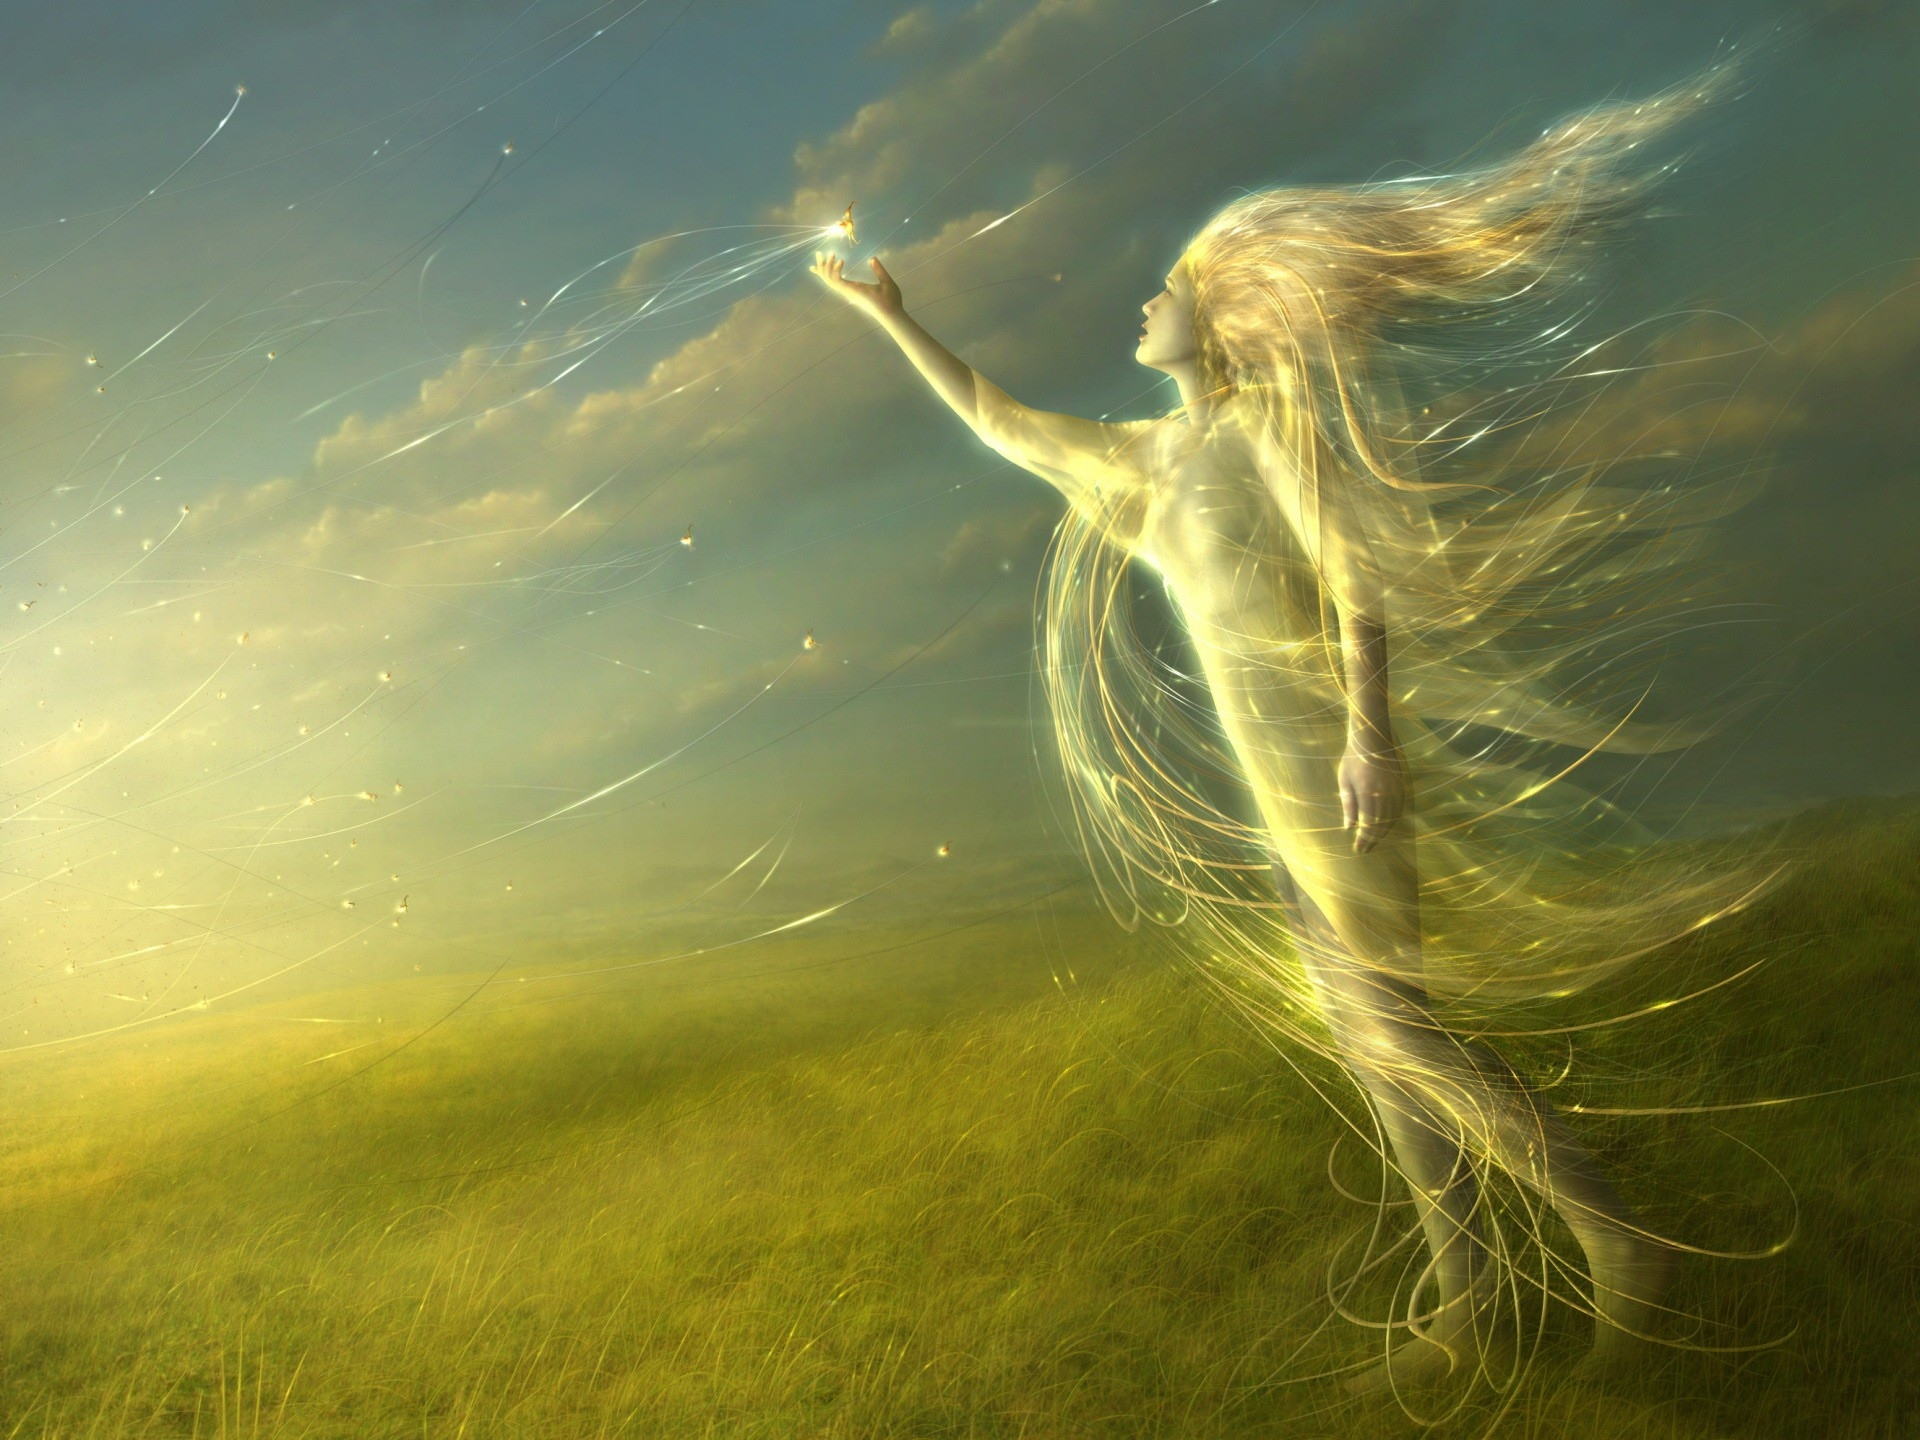 120750 download wallpaper Abstract, Angel, Shine, Light, Field screensavers and pictures for free